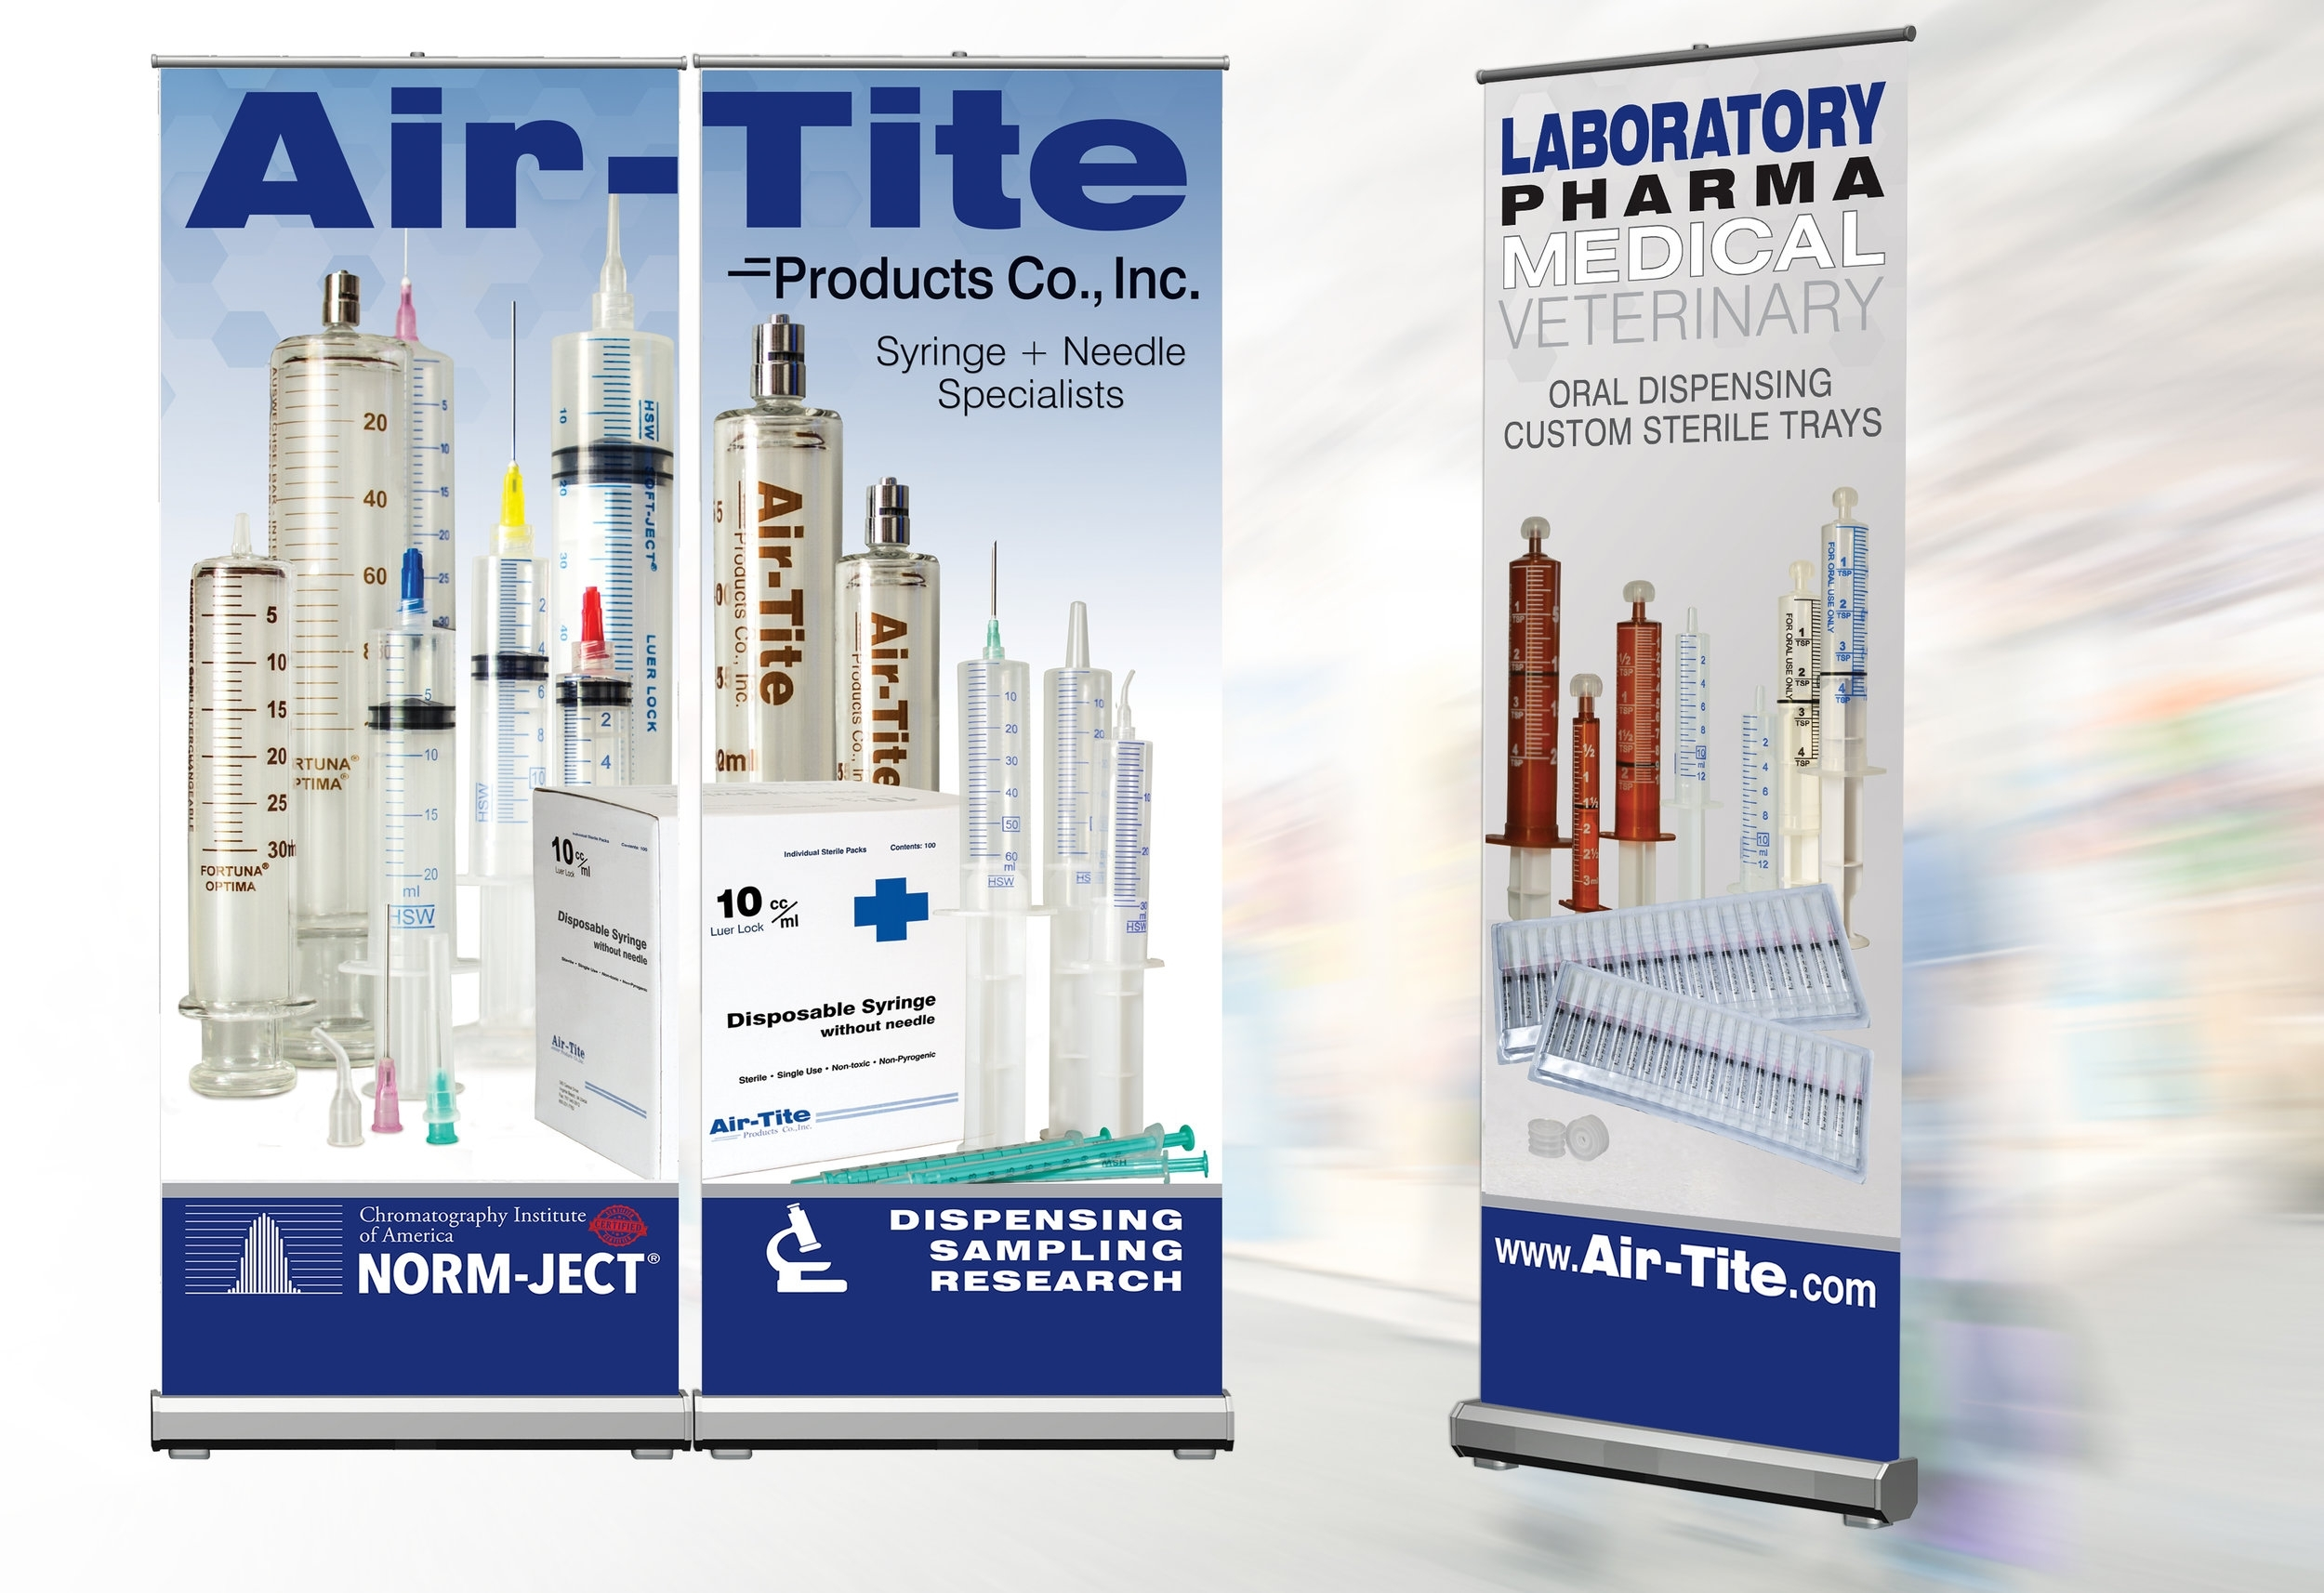 AIR-TITE PRODUCTS, INC.